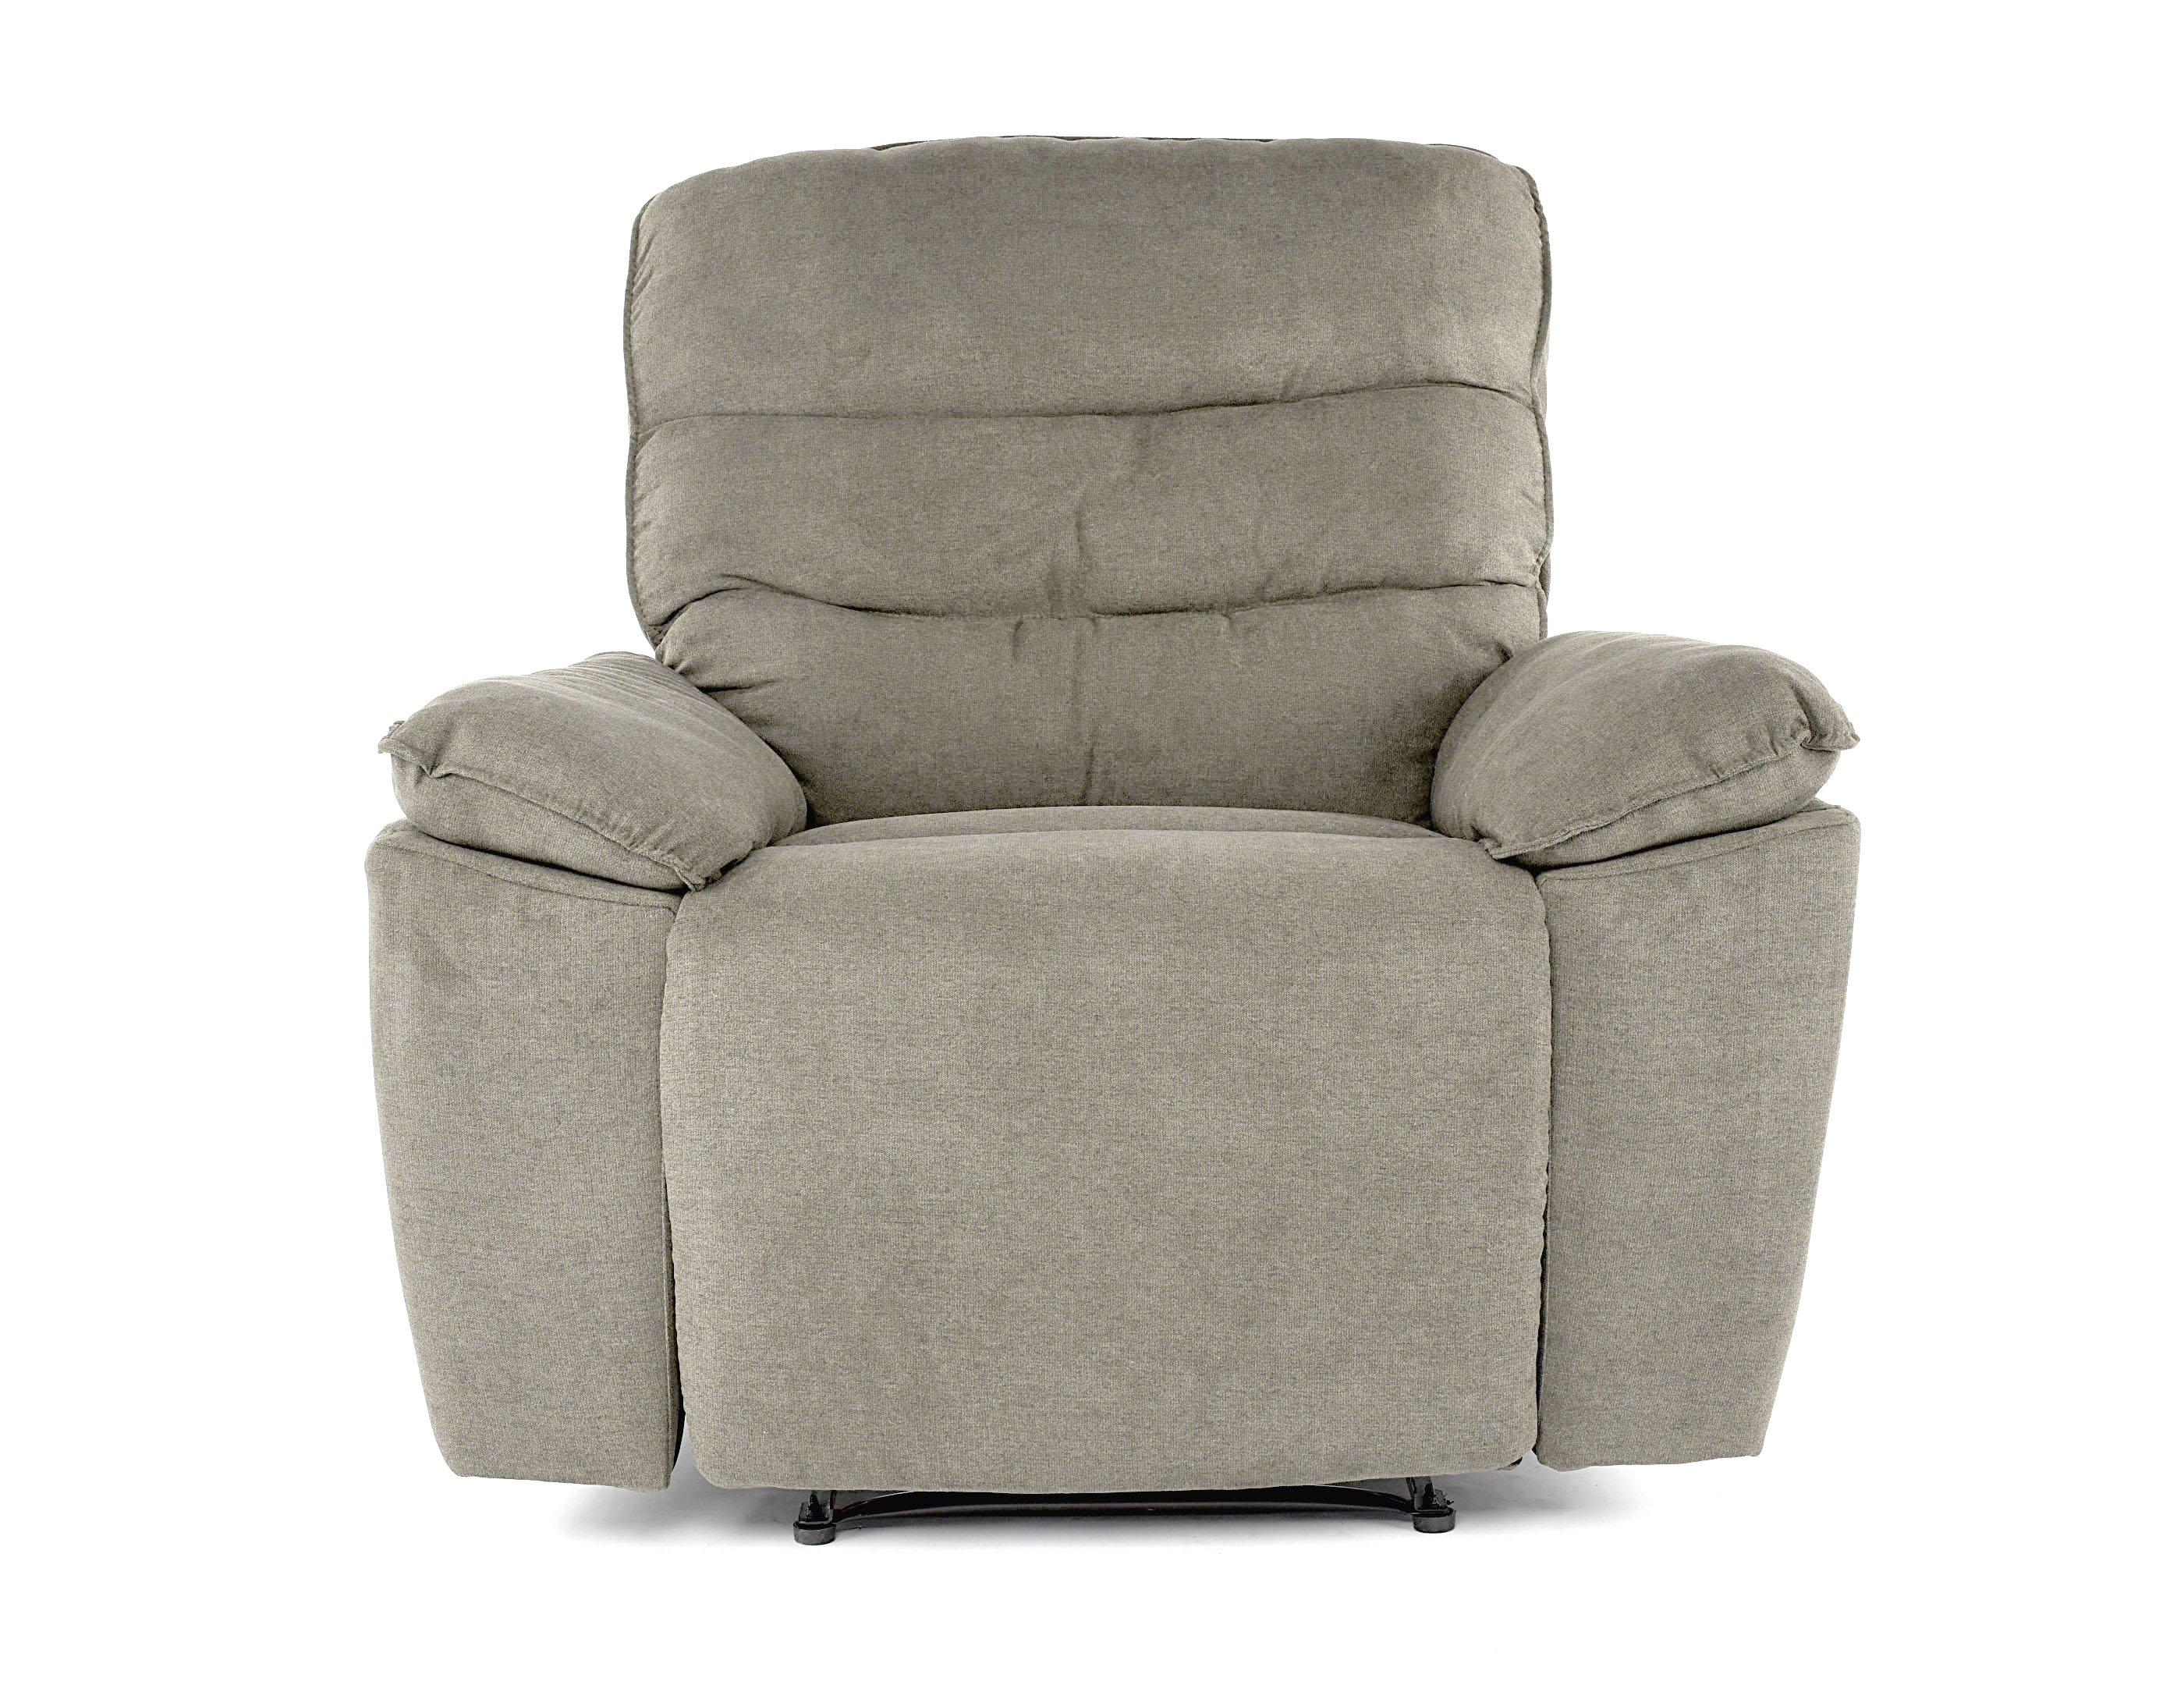 HOMEZ Manual Recliner Armchair 108 x 96 x 100 Beige